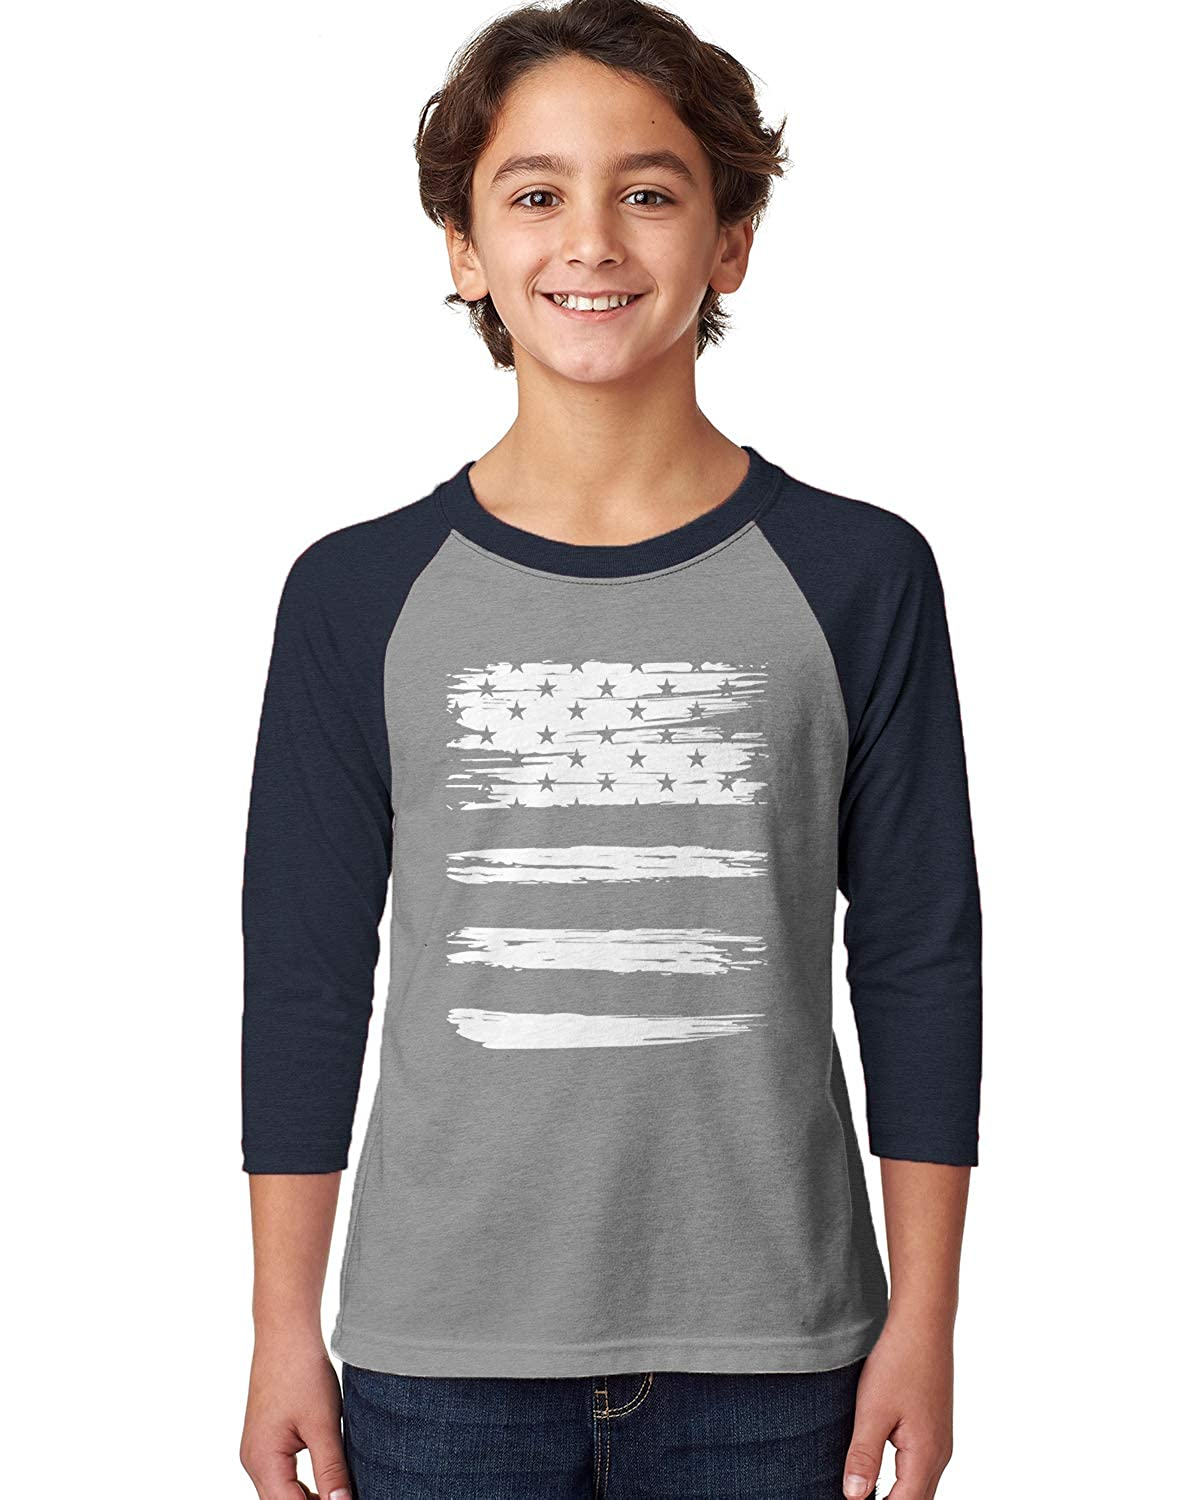 Trendy 4th of July Youth 3//4 Raglan Shirt SpiritForged Apparel White USA Torn Flag